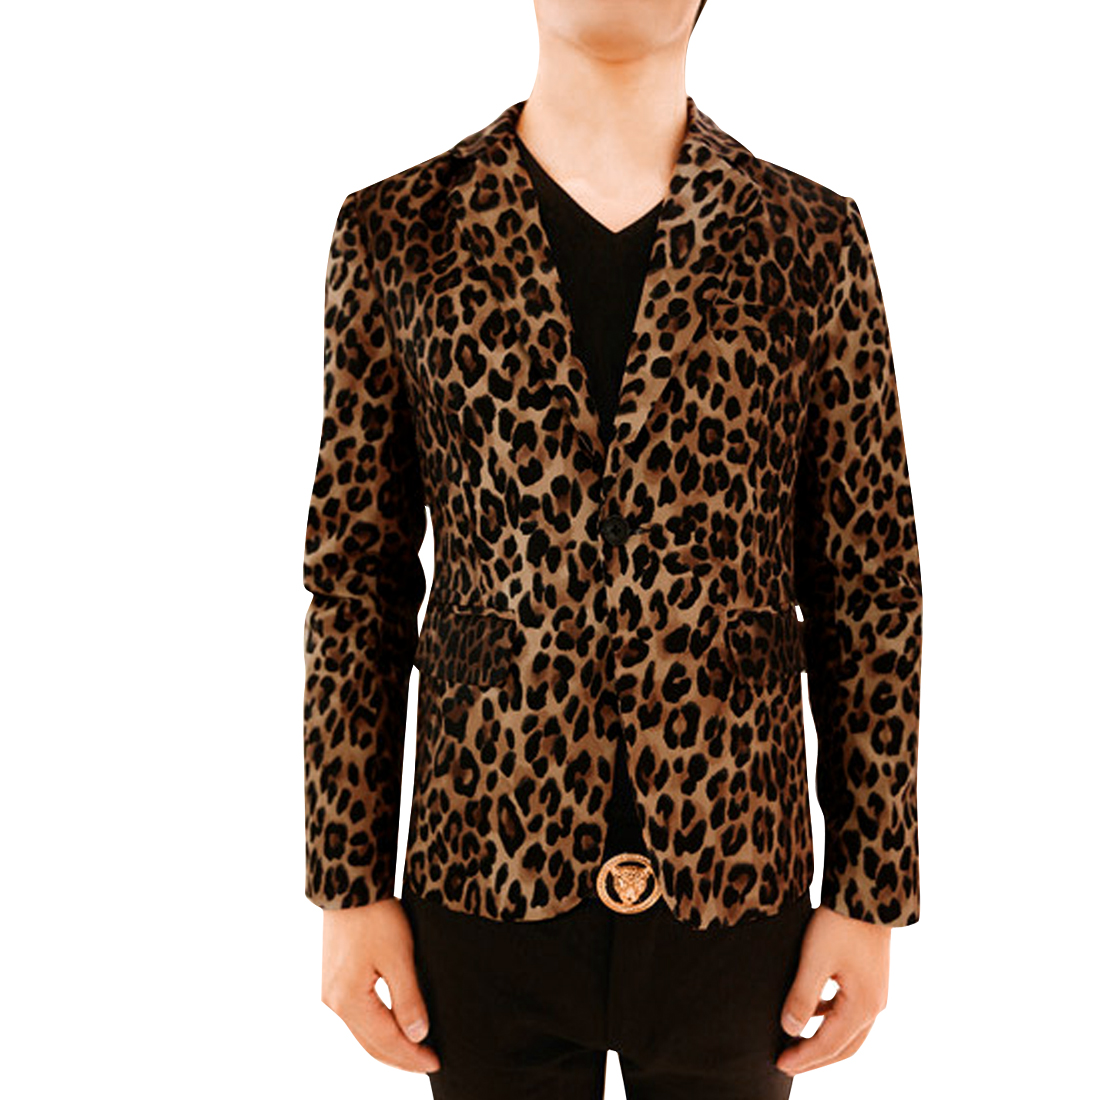 Men Peaked Lapel One Button Leopard Pattern Pockets Blazer Black Brown S